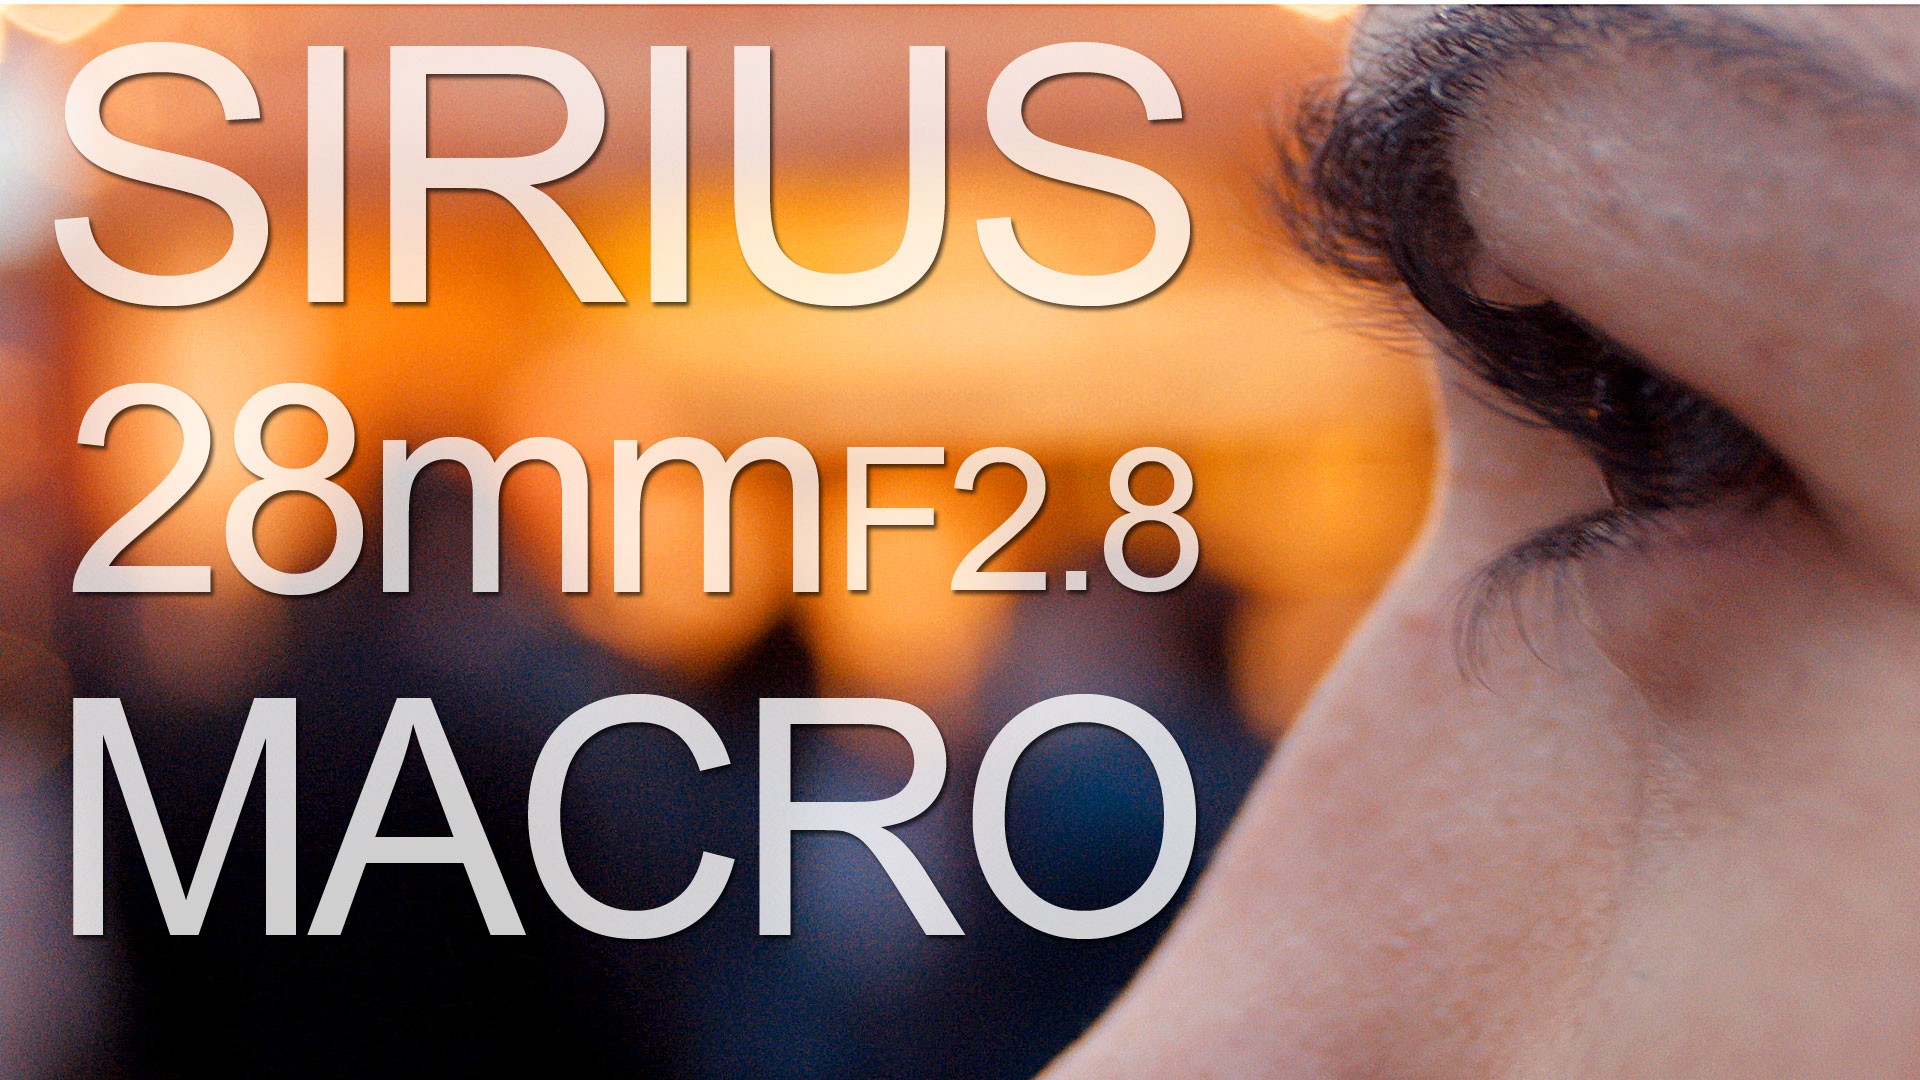 SIRIUS 28mm F2.8 Macro TEST & REVIEW